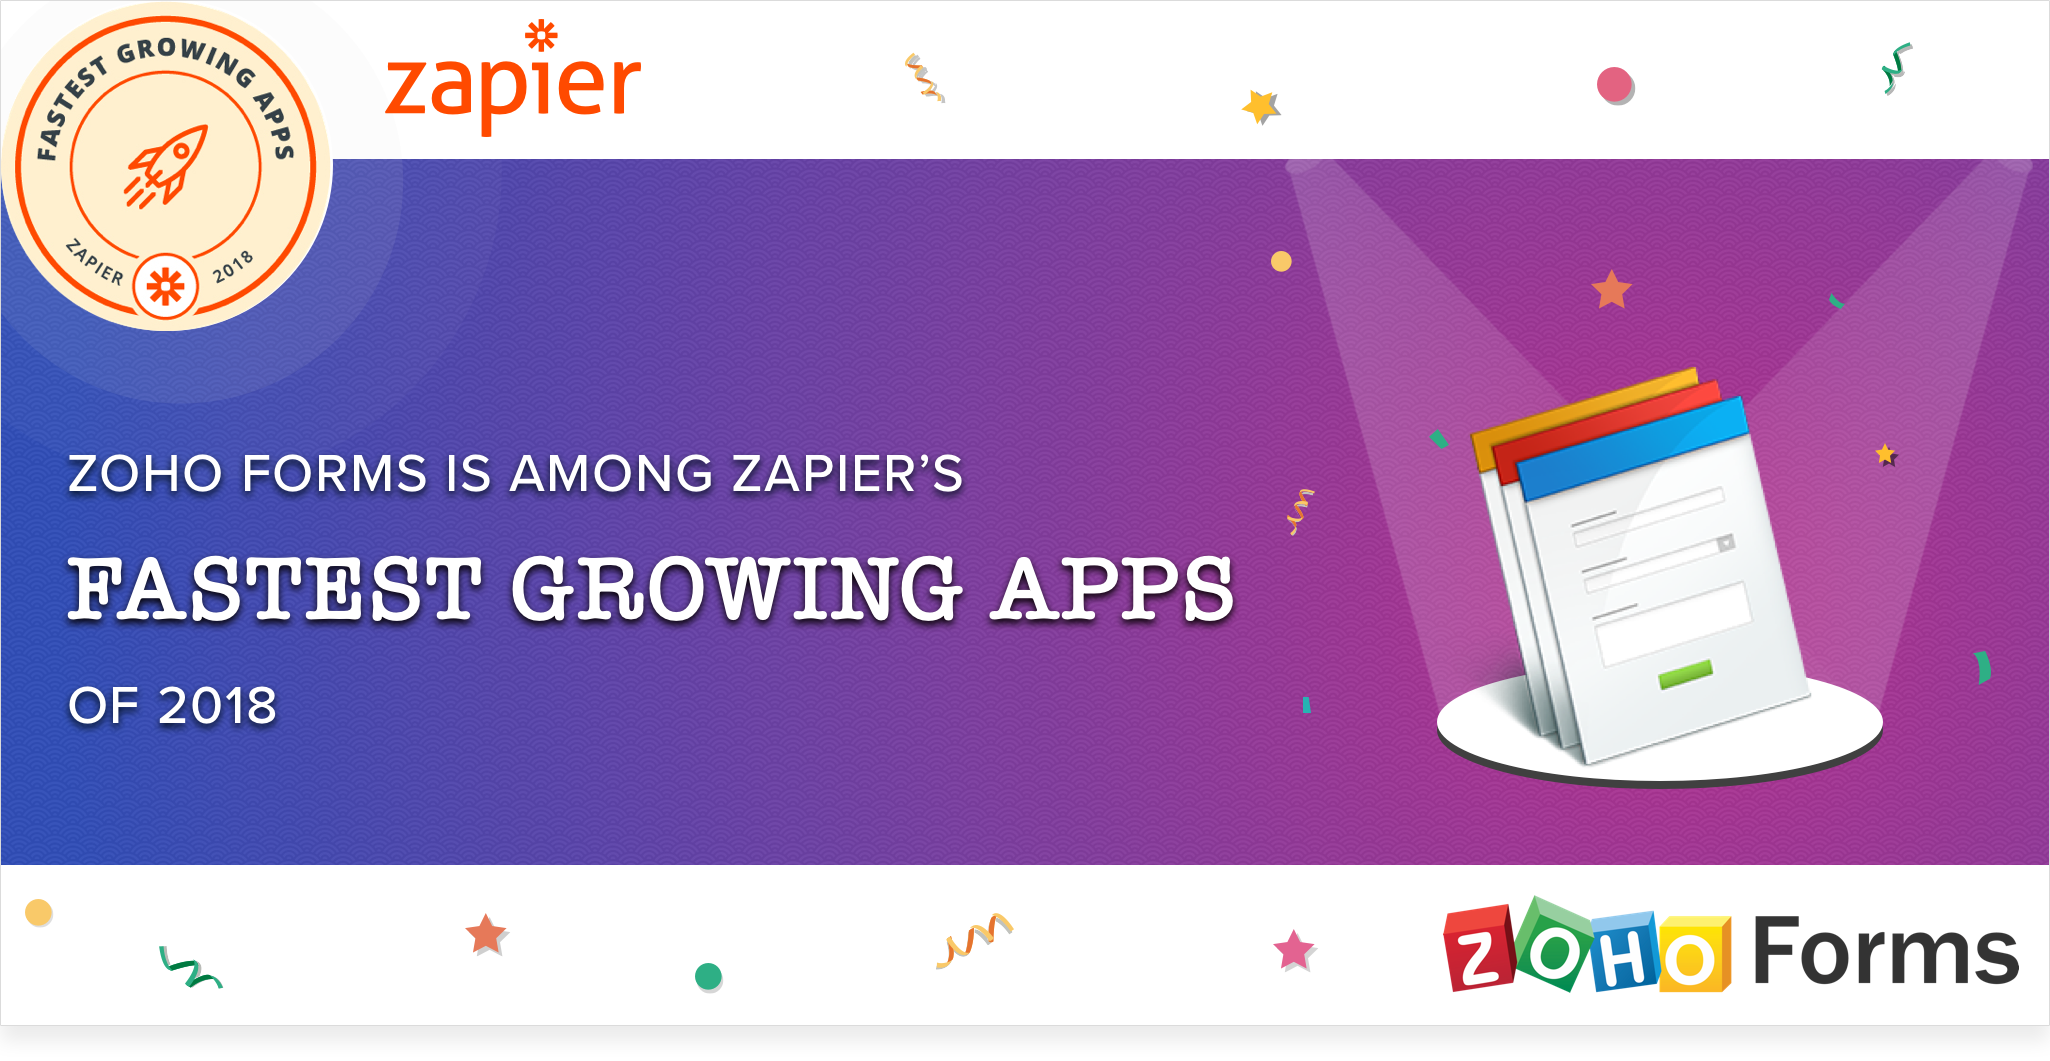 Zoho Forms is among Zapier's fastest growing apps of 2018